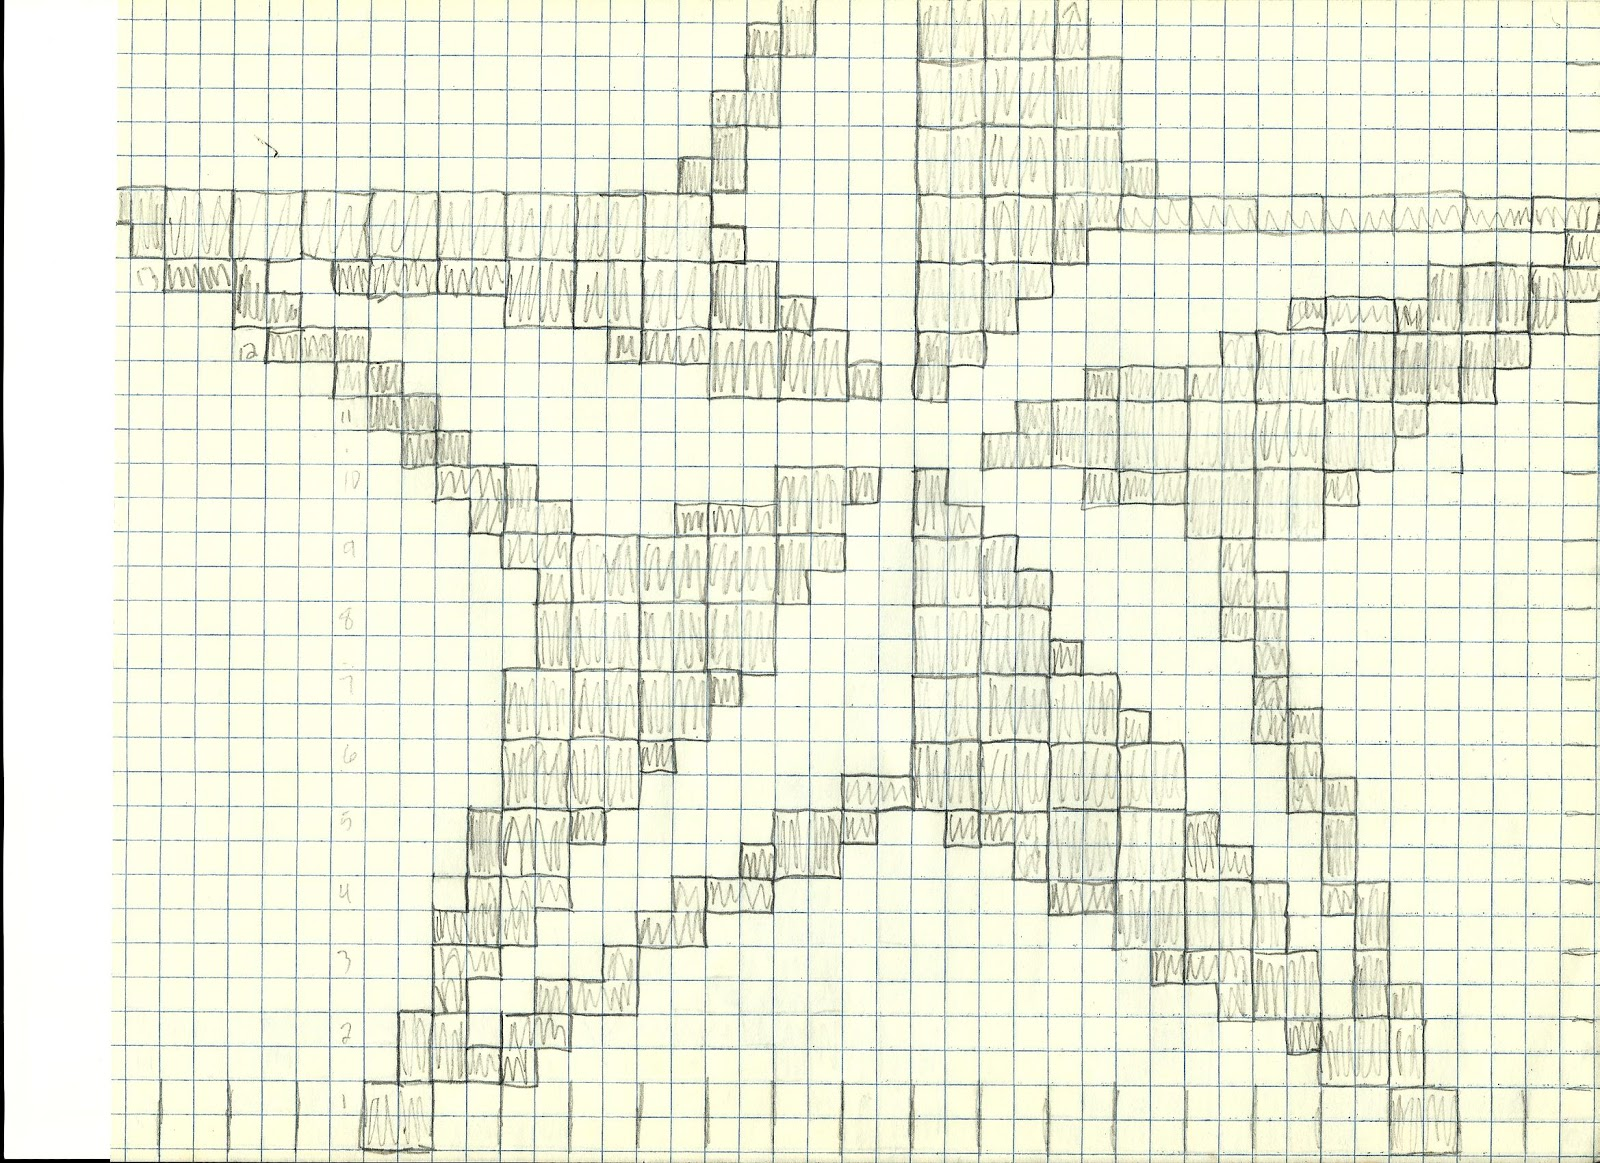 Crochet Patterns On Graph Paper : Heres what it looks like crocheted in a basic two color format: